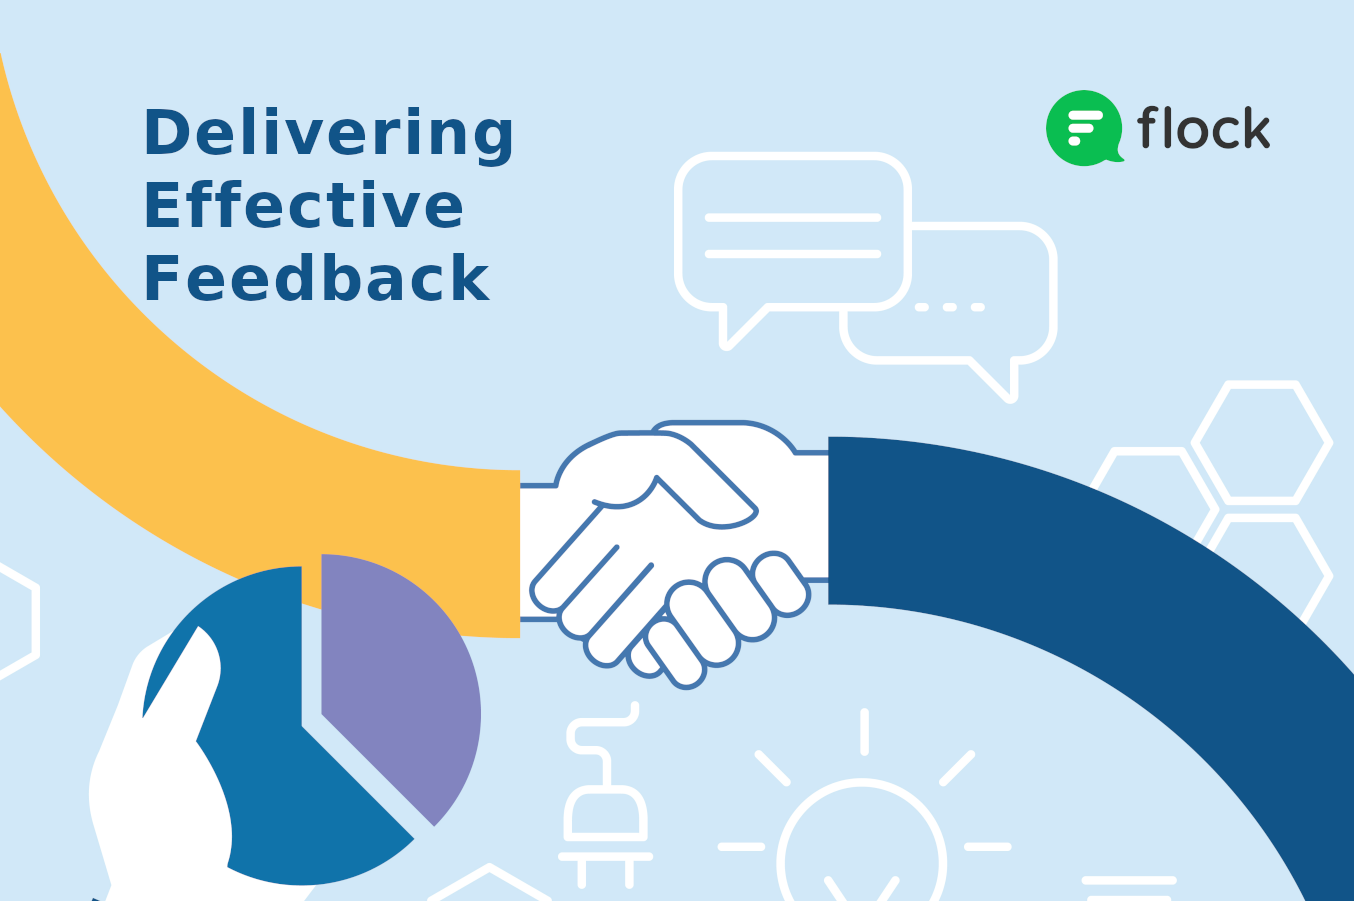 Delivering Effective Feedback